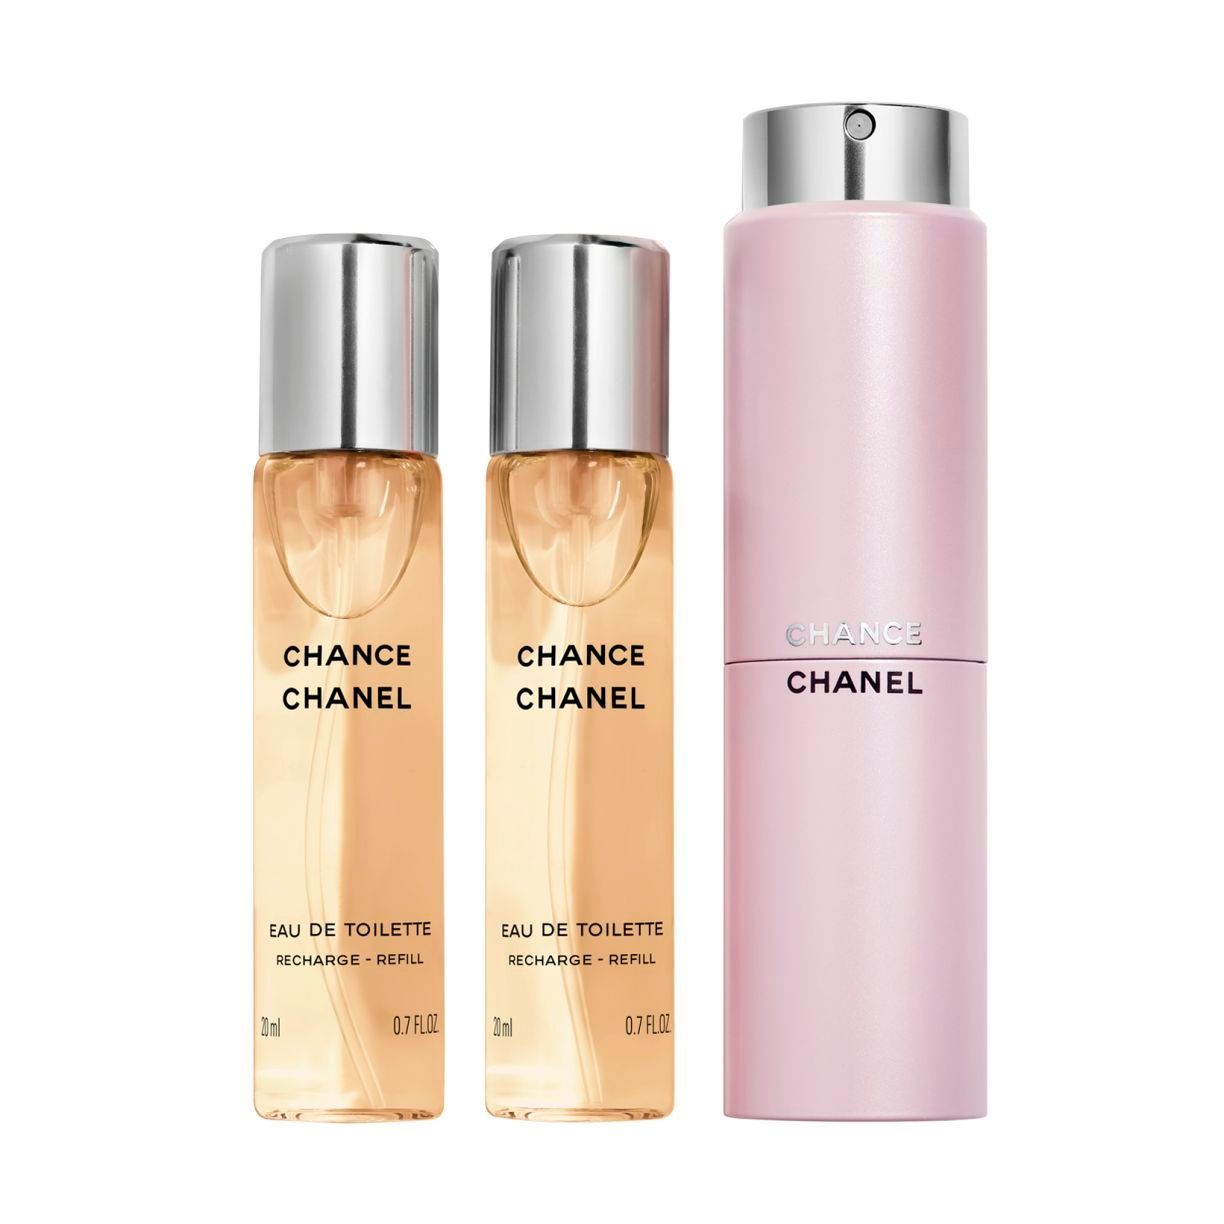 CHANCE EAU DE TOILETTE TWIST AND SPRAY 3 x 20ml